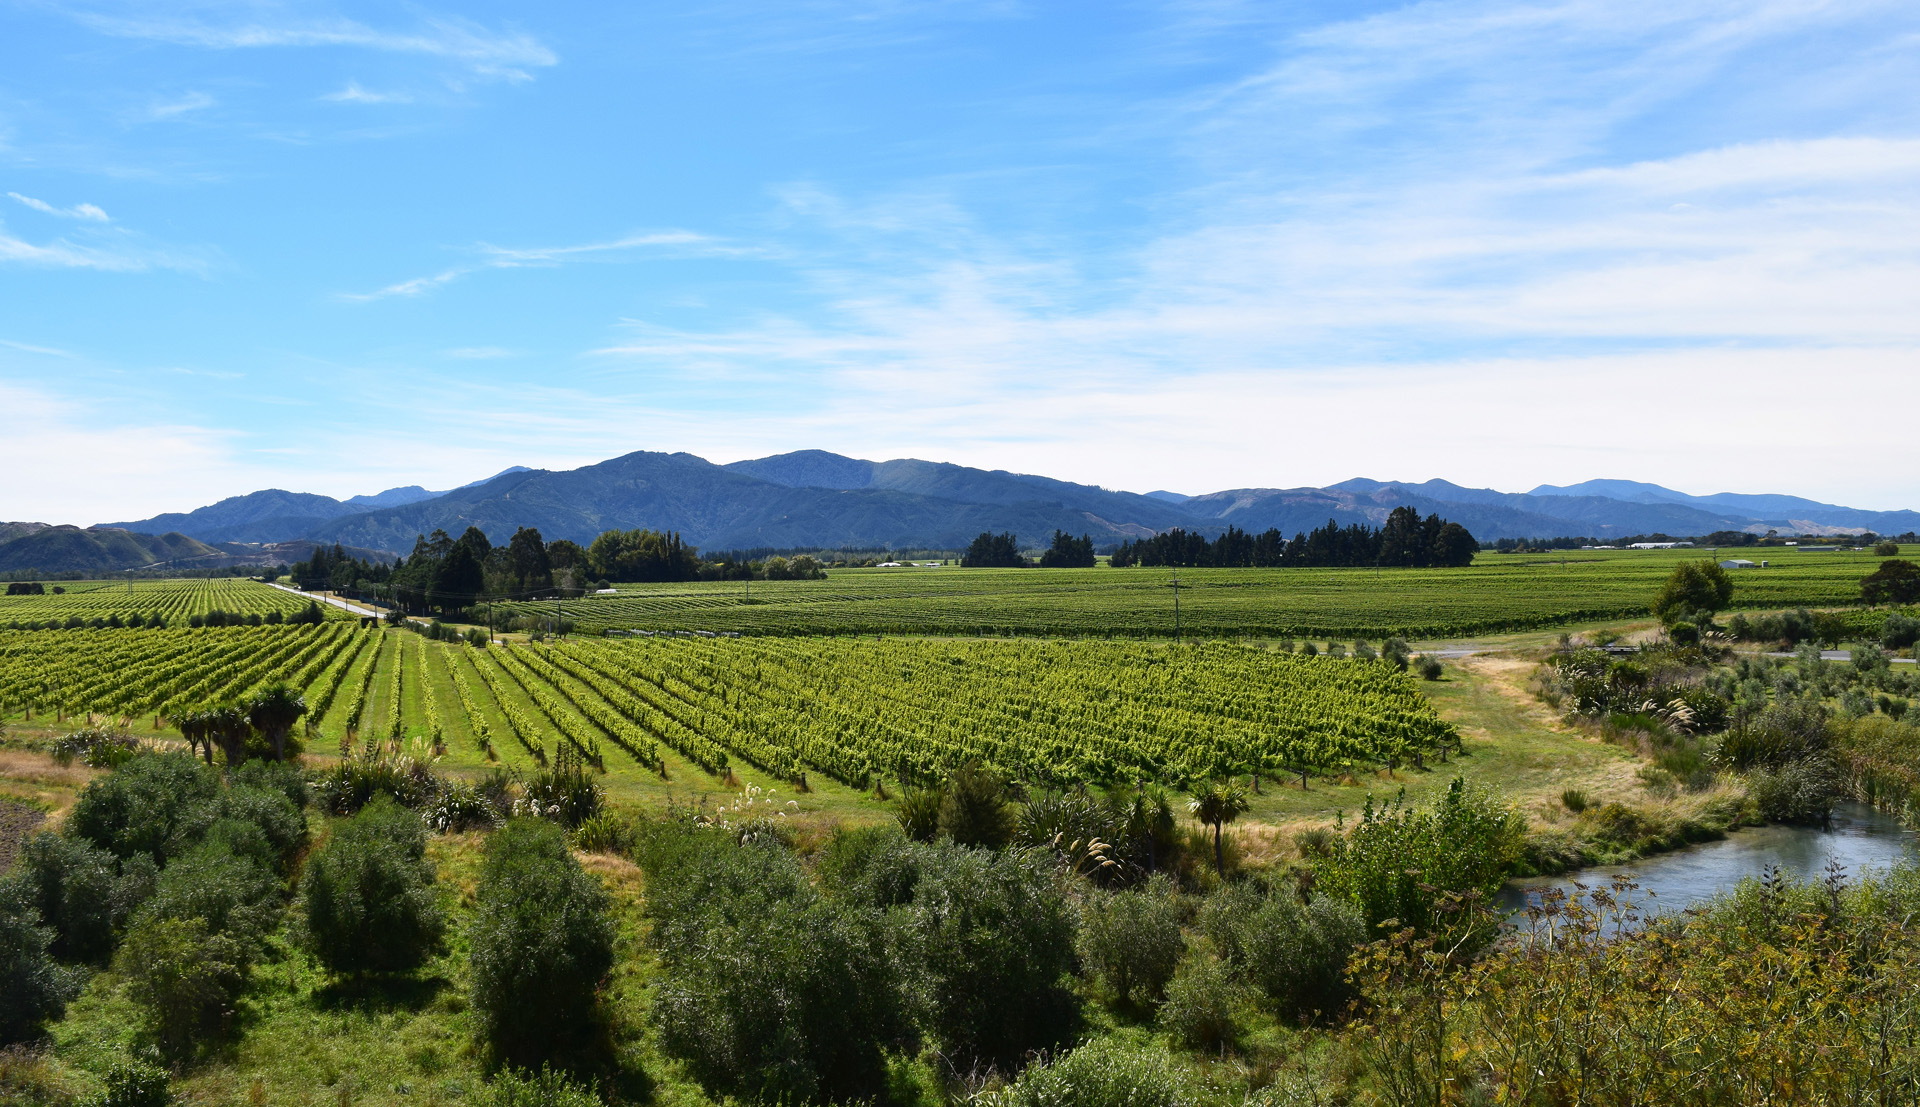 New Zealand's version of Napa Valley is the expansive Marlborough region, which produces 66% of the country's wine and is the home of famous Cloudy Bay.